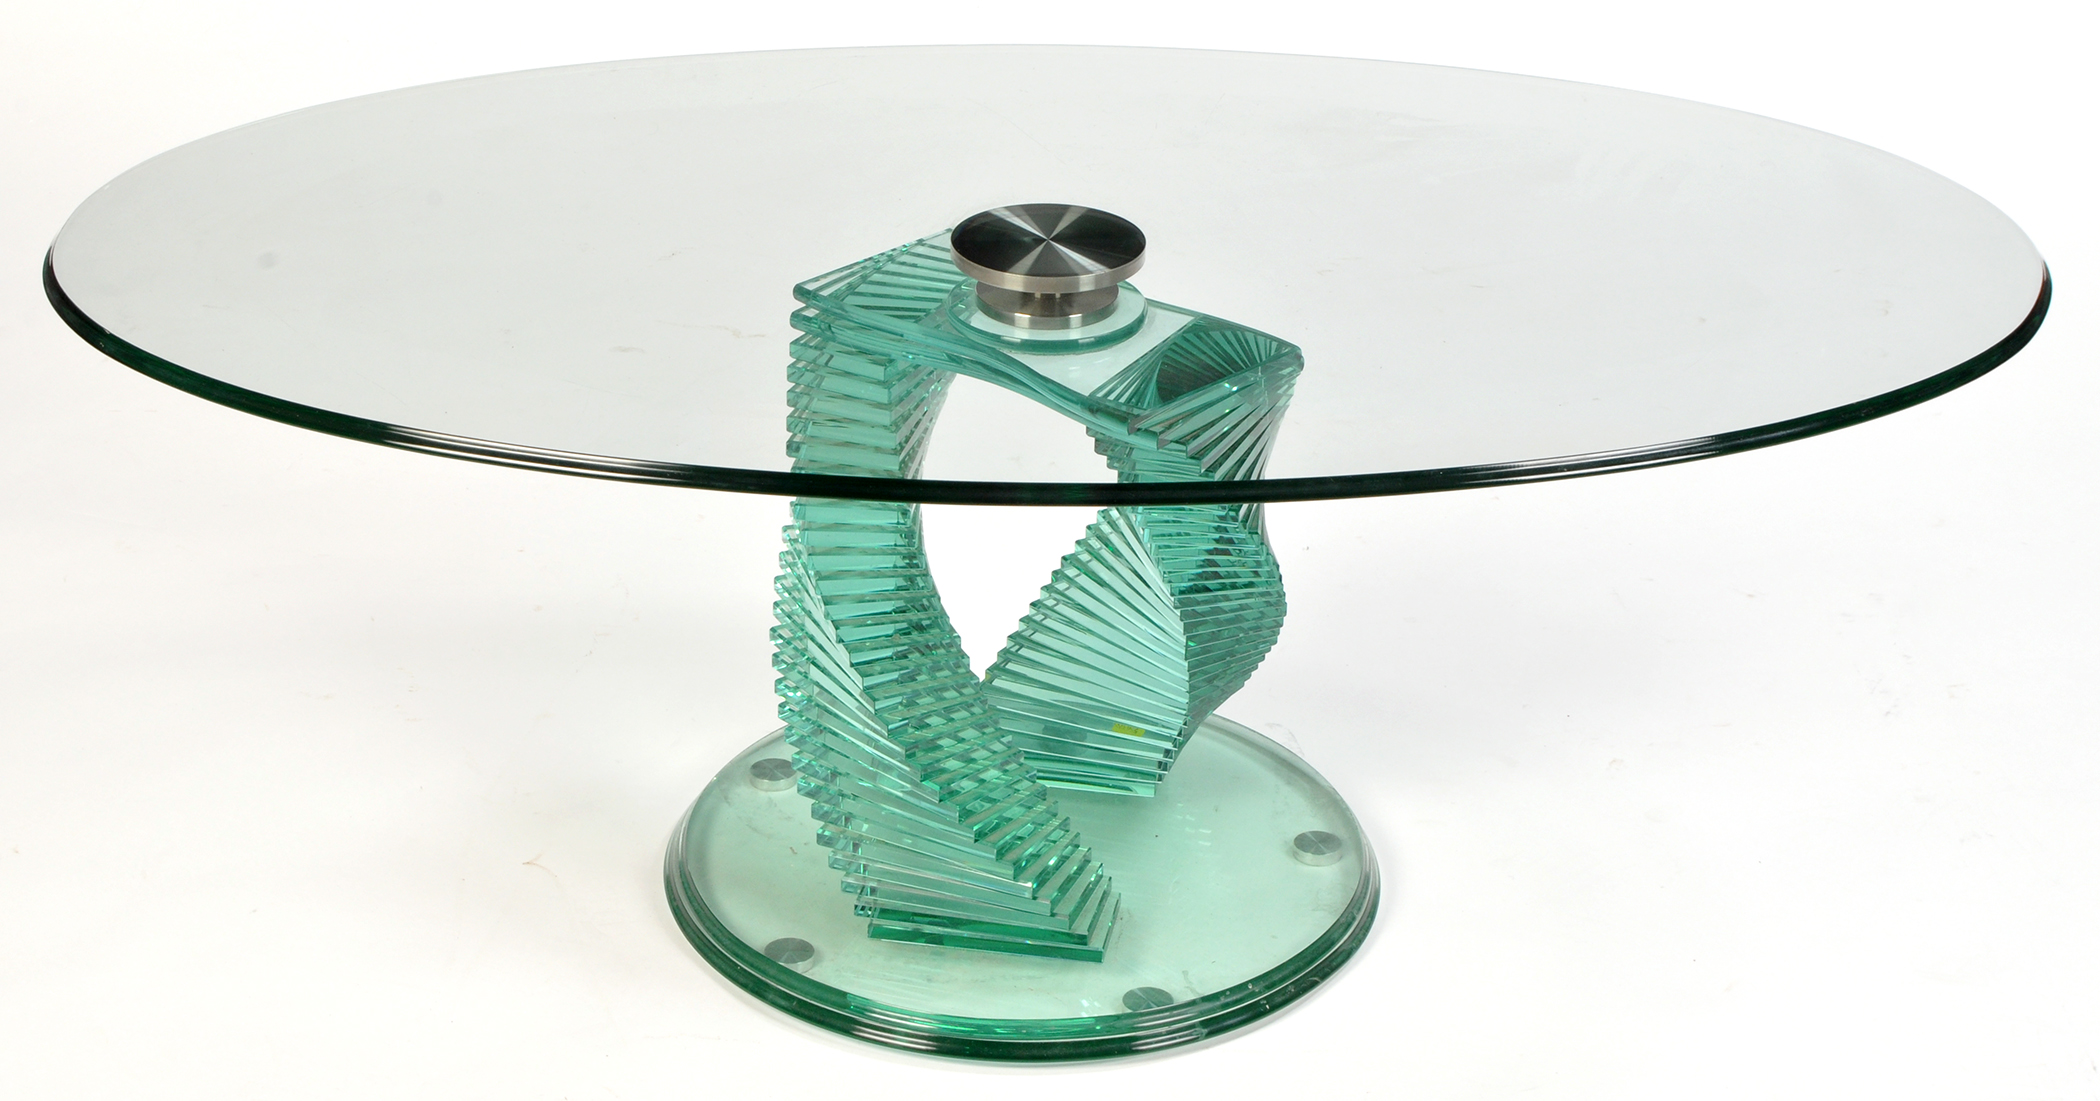 A modern glass coffee table the oval plated glass top raised on